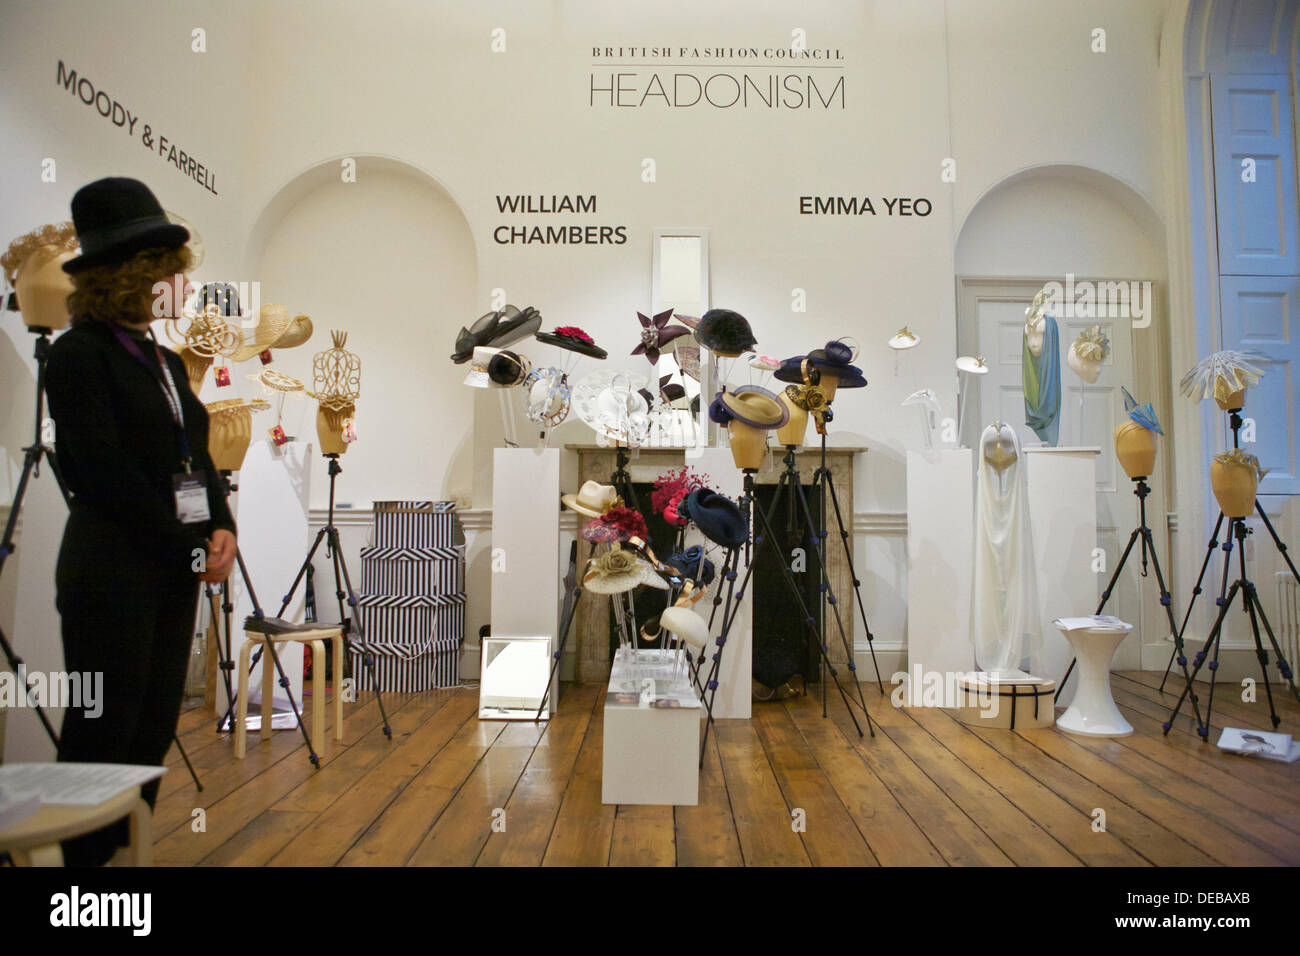 London Fashion Week at Somerset House: latest designs from emerging talent. Hat designers: Moody & Farrell, William Chambers, - Stock Image